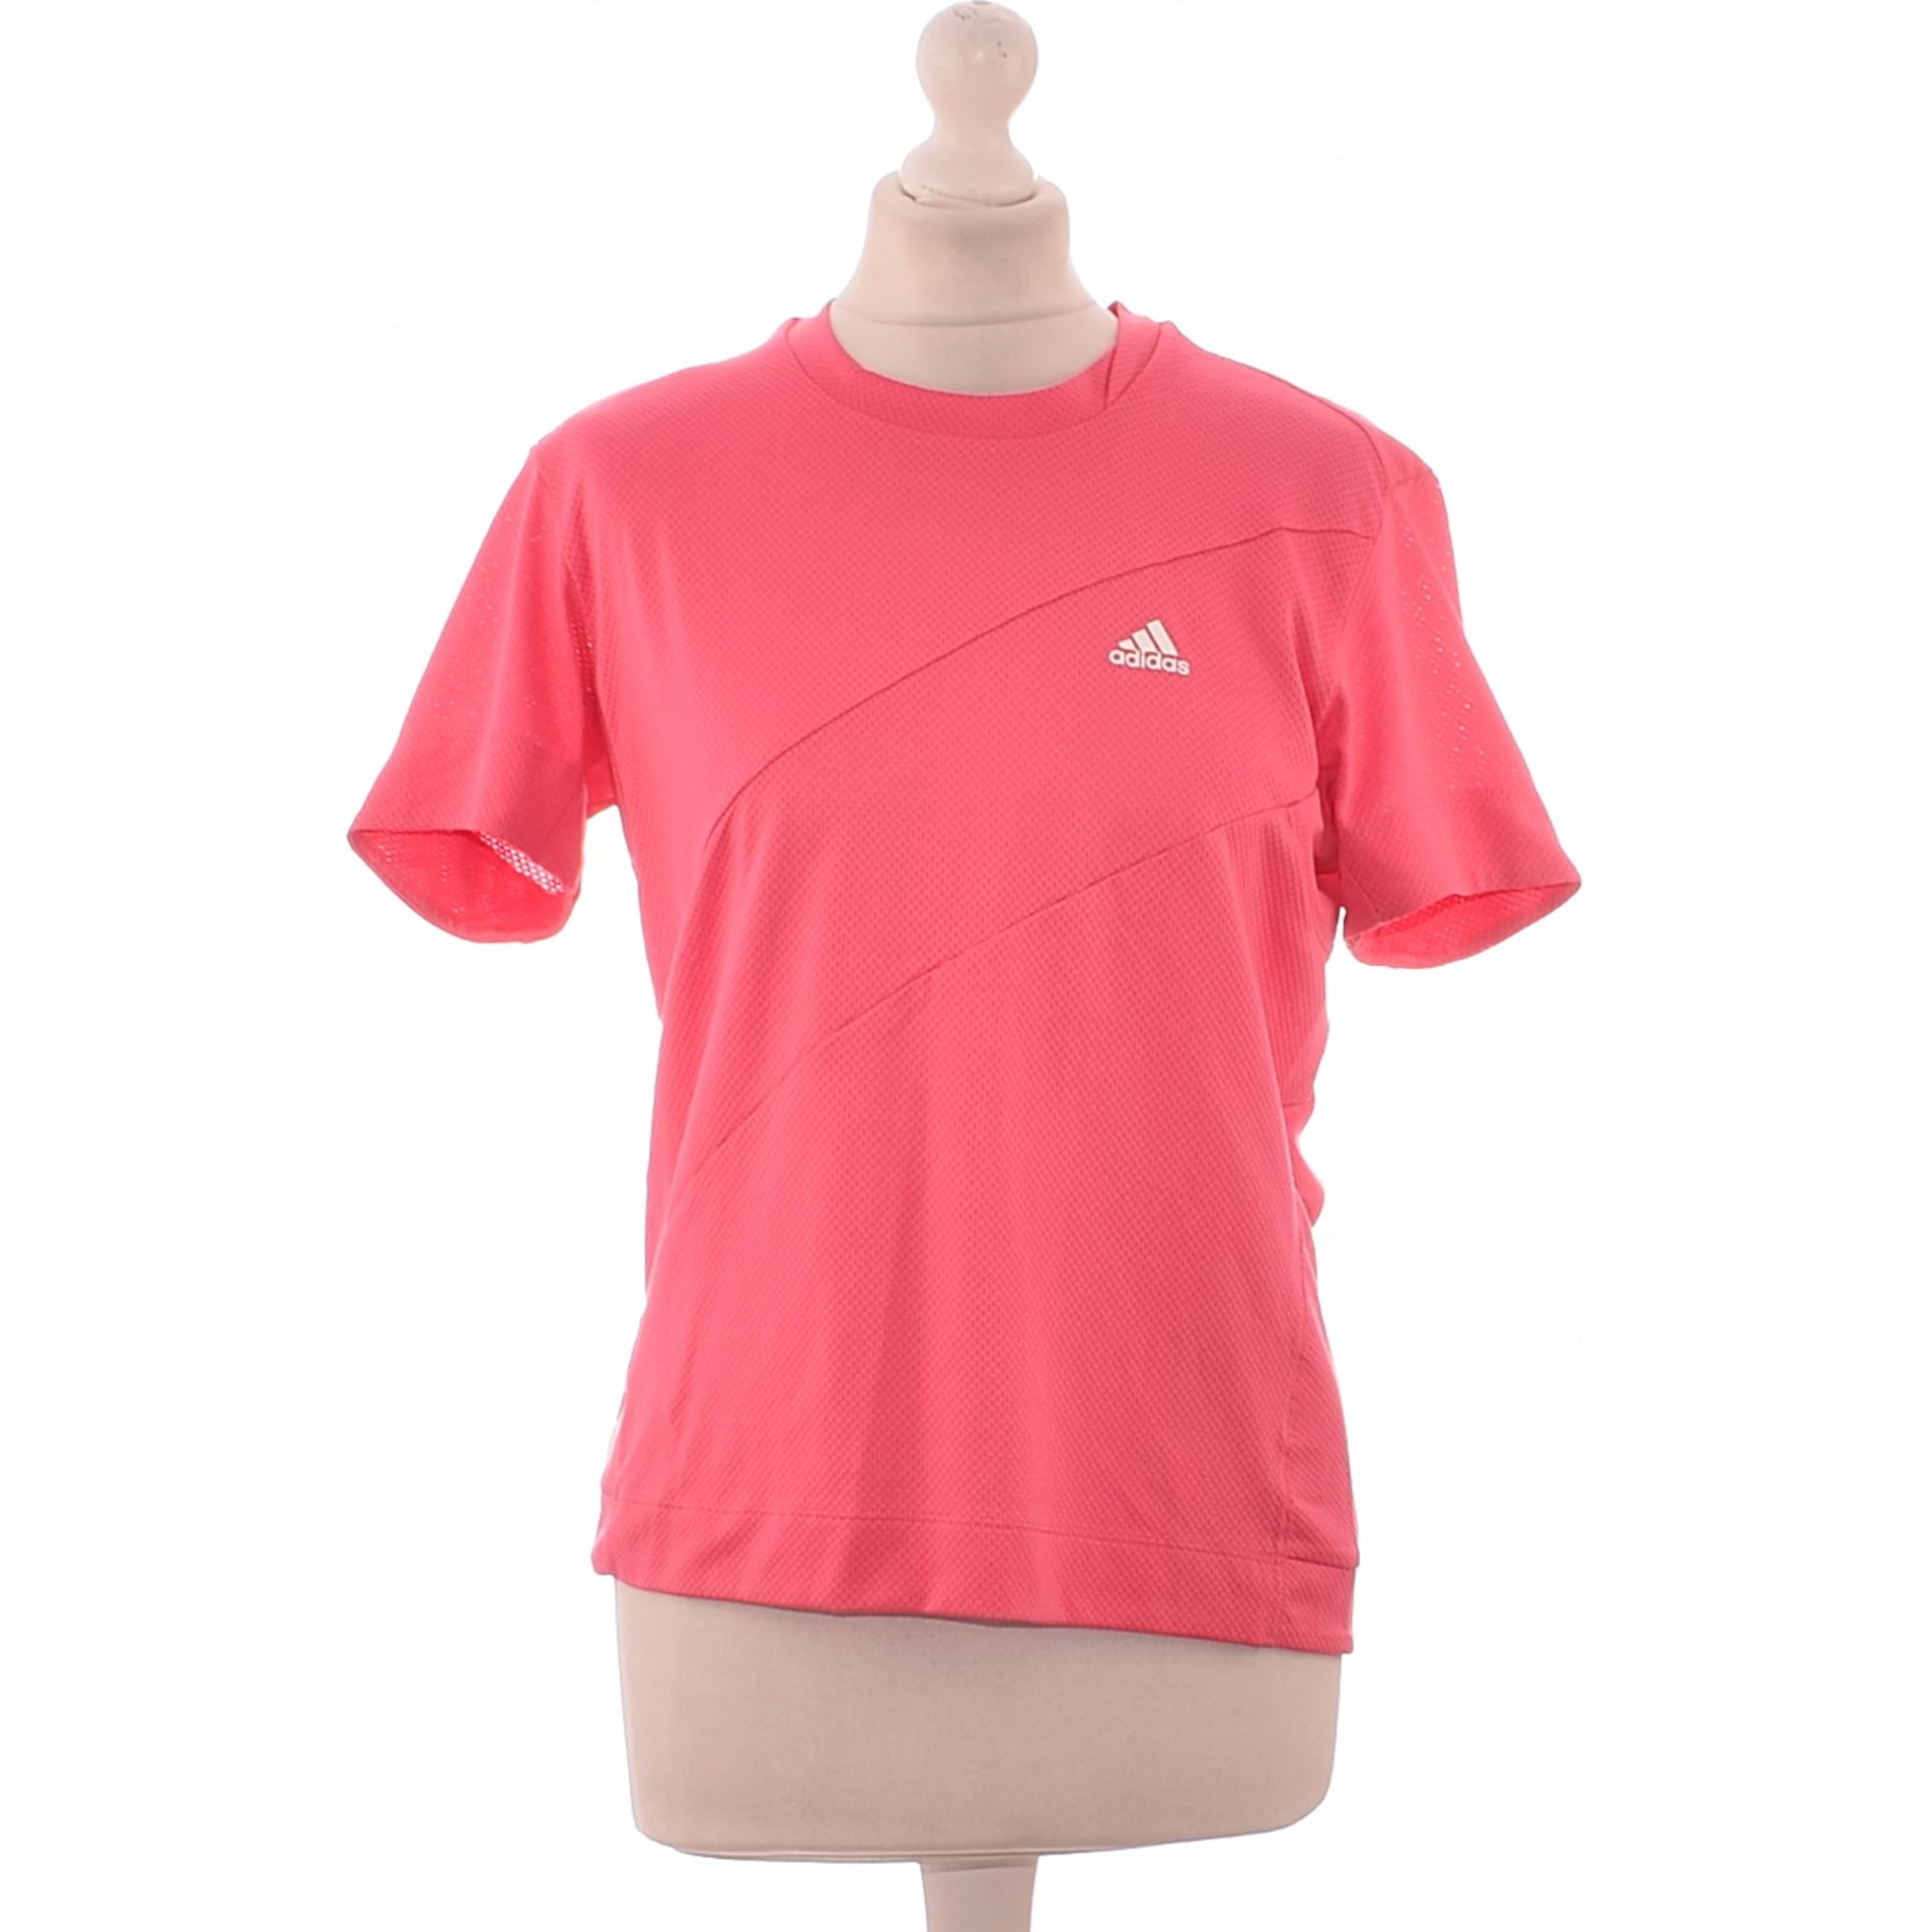 Top, T-shirt ADIDAS Pink, fuchsia, light pink